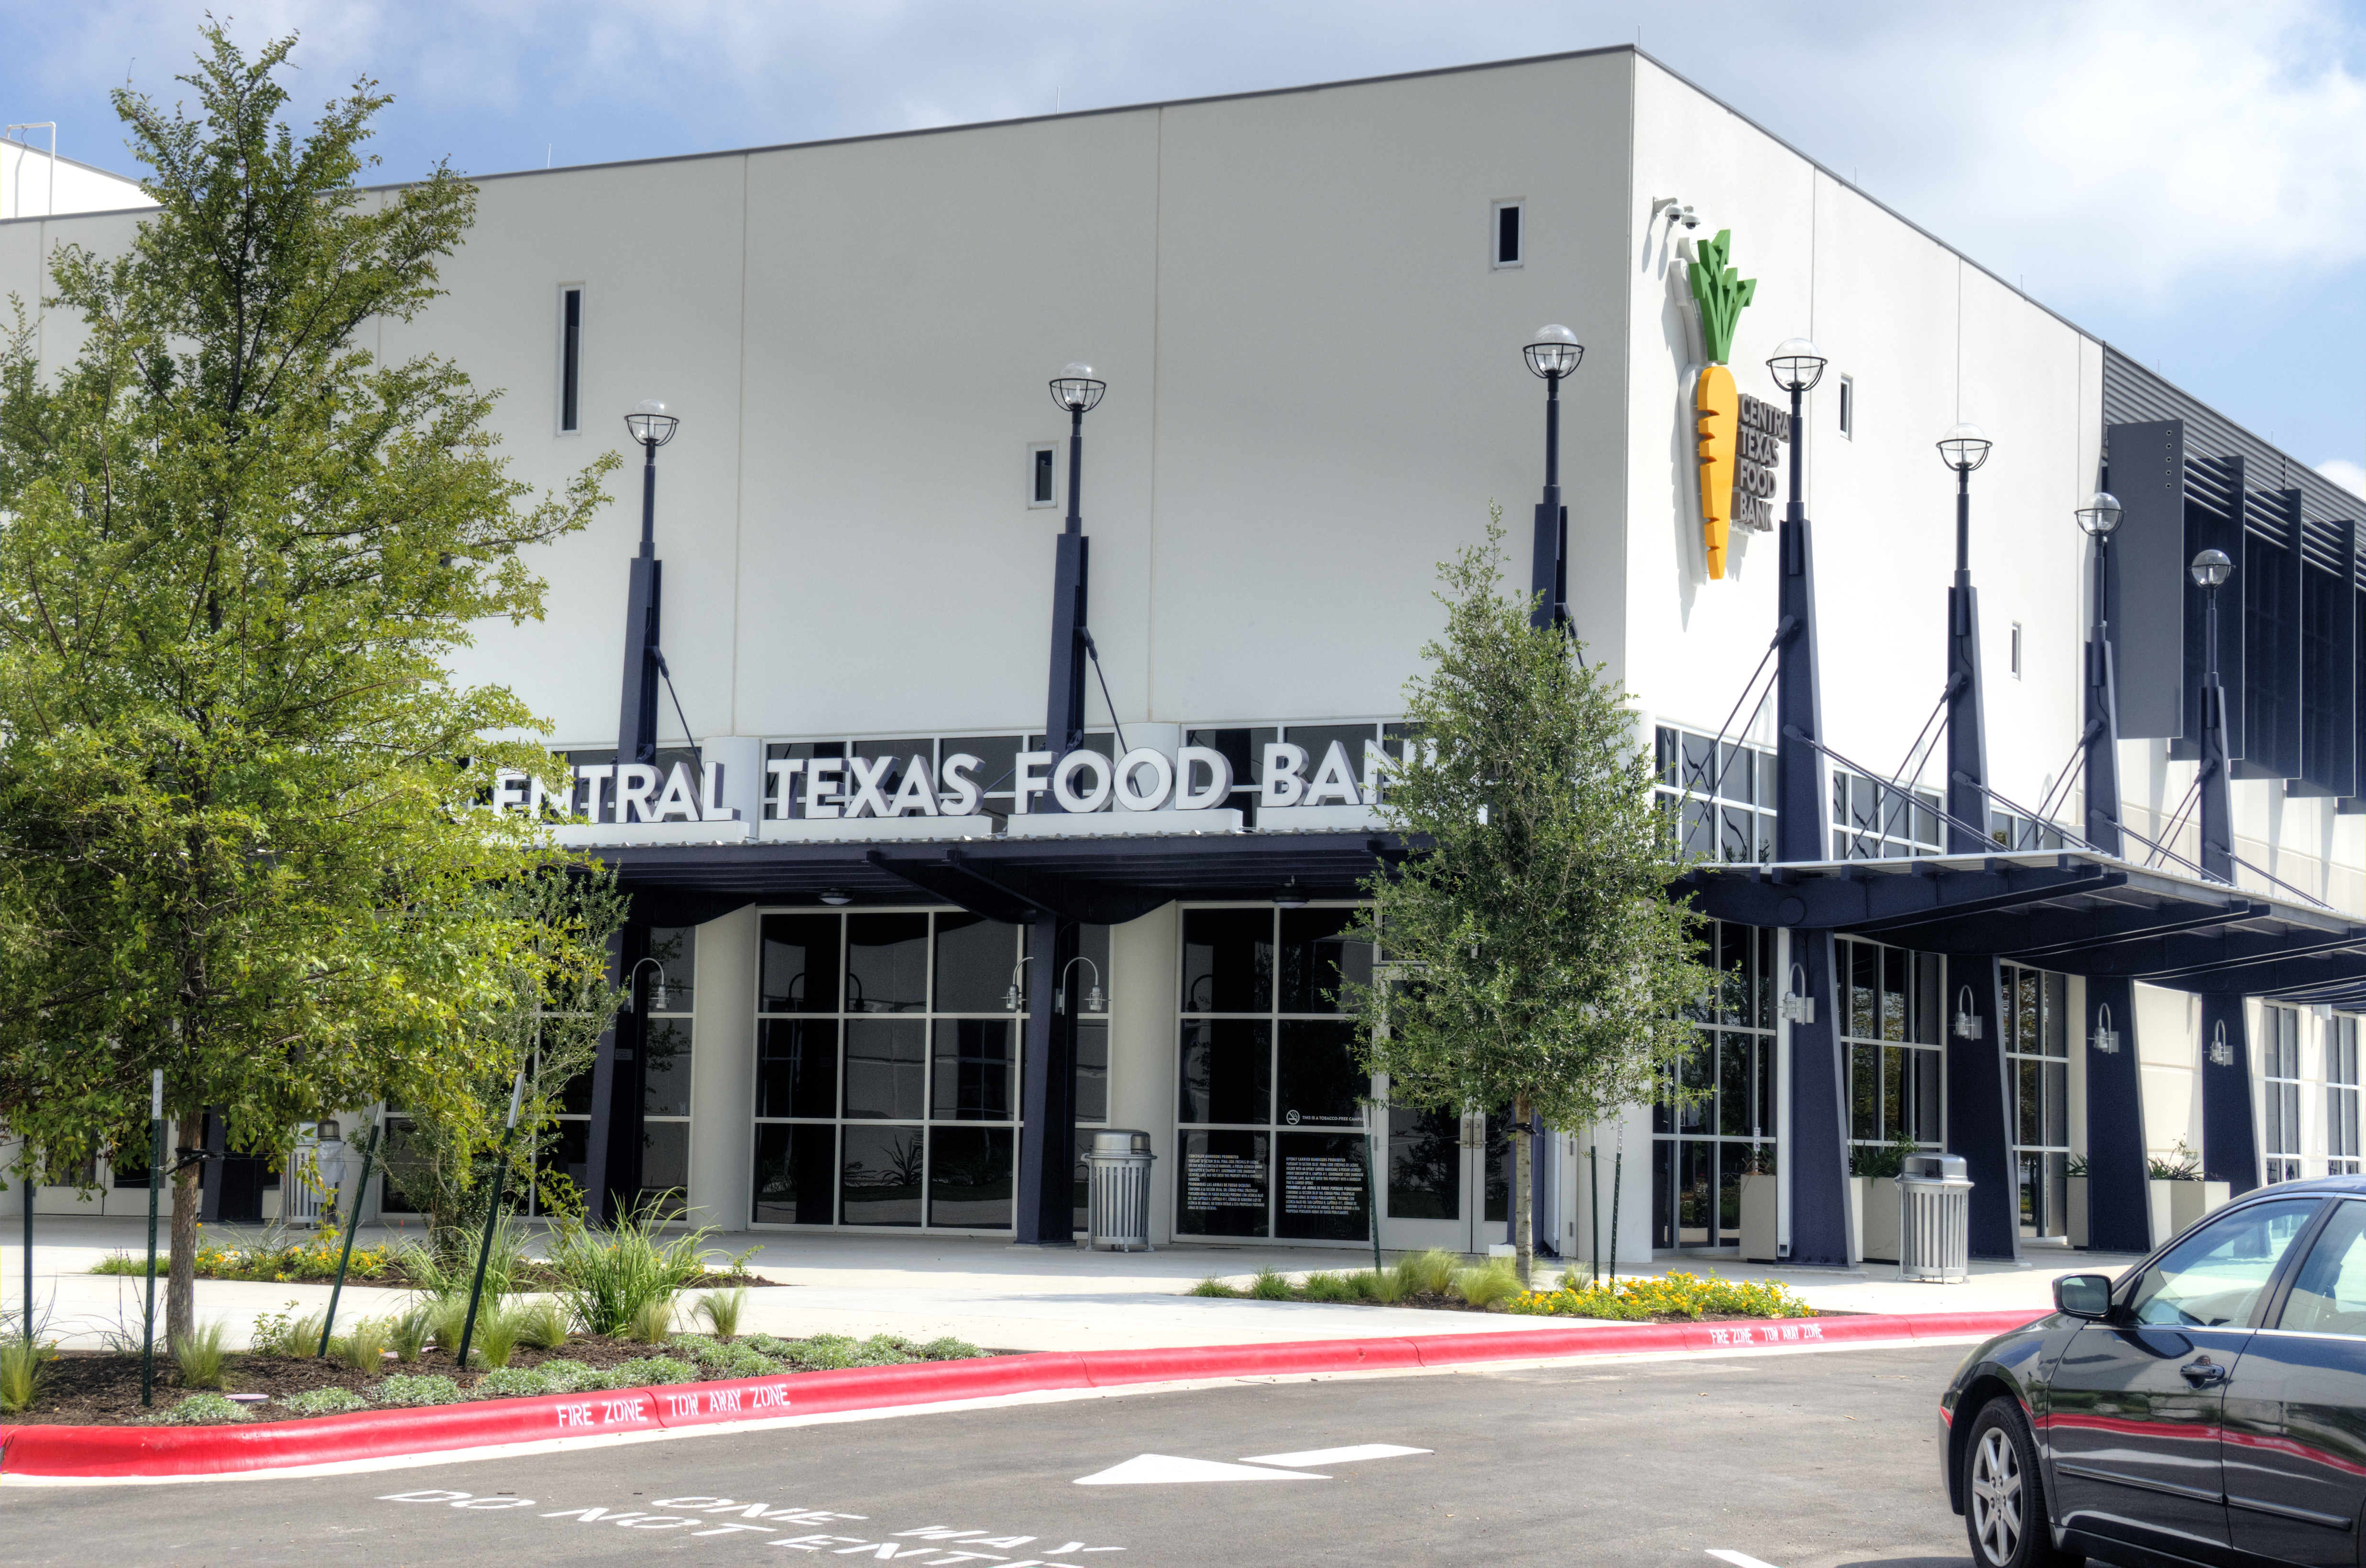 Exterior Image of Central Texas Food Bank Building